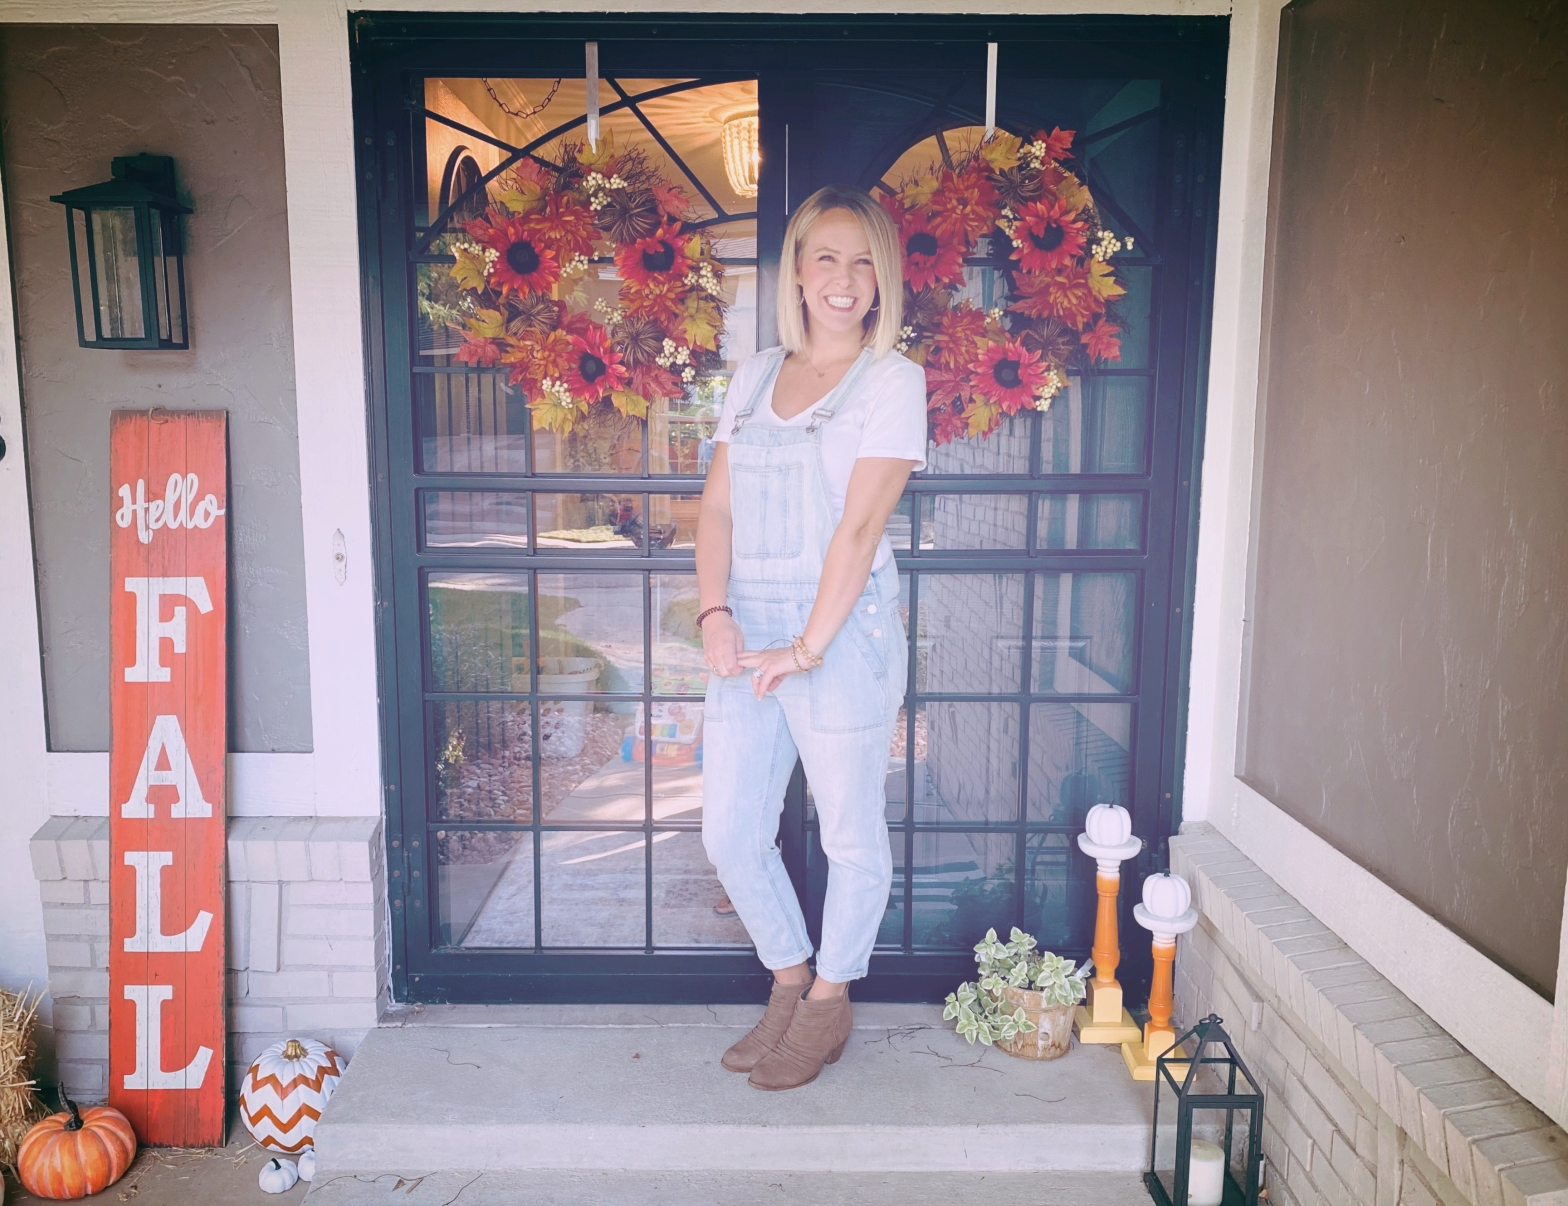 5 Steps to Decorate your Fall Front Porch